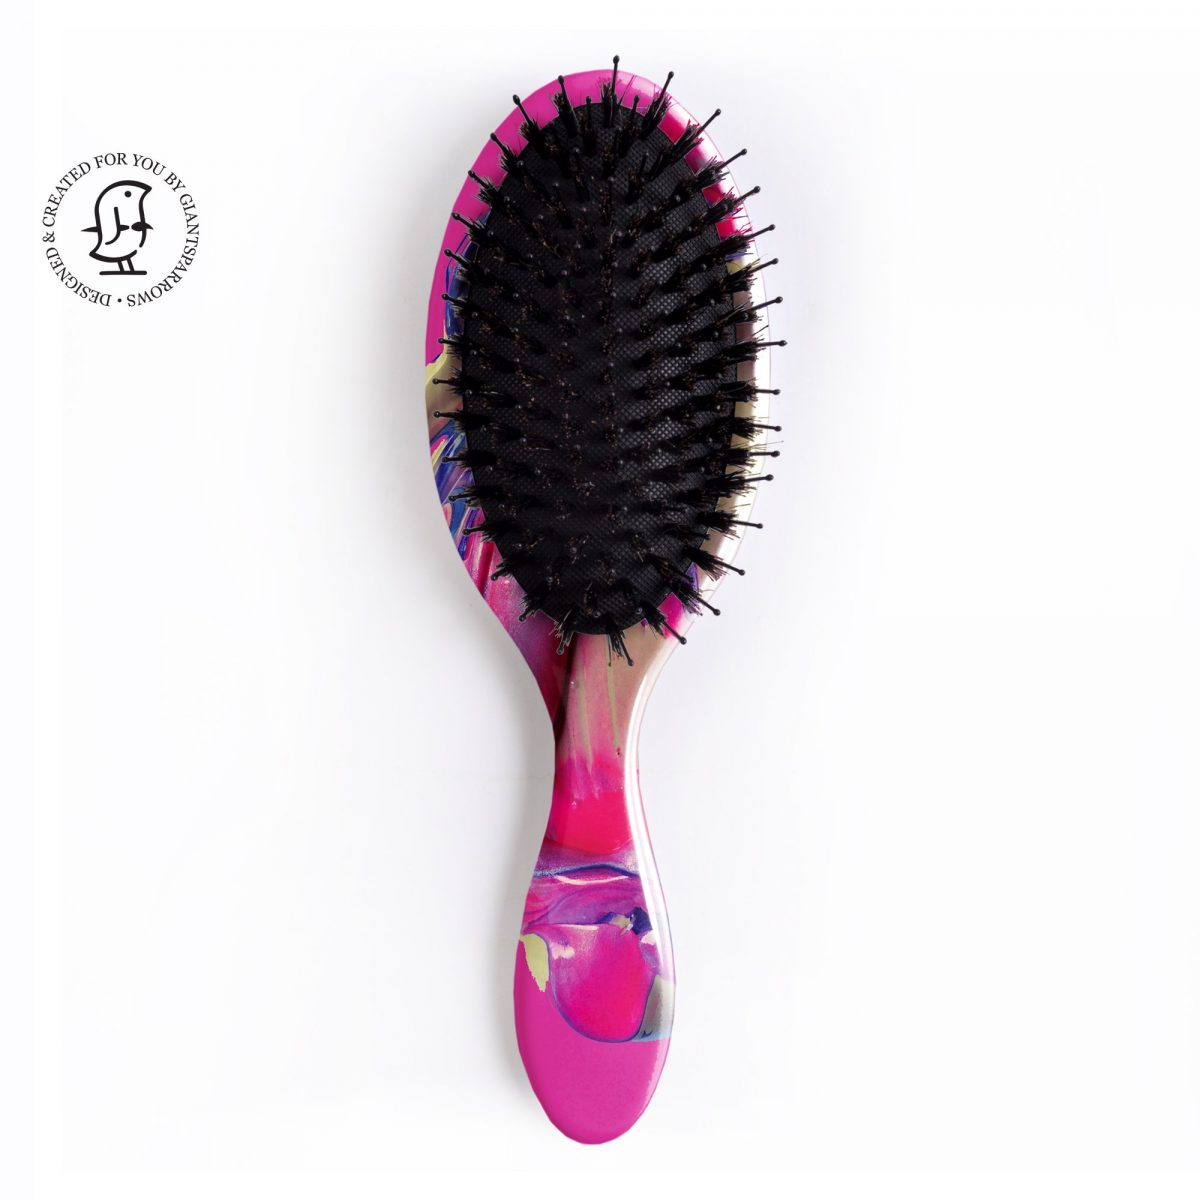 Personalised Hair Brush Hot Pink Paint Swirl - Colour POP